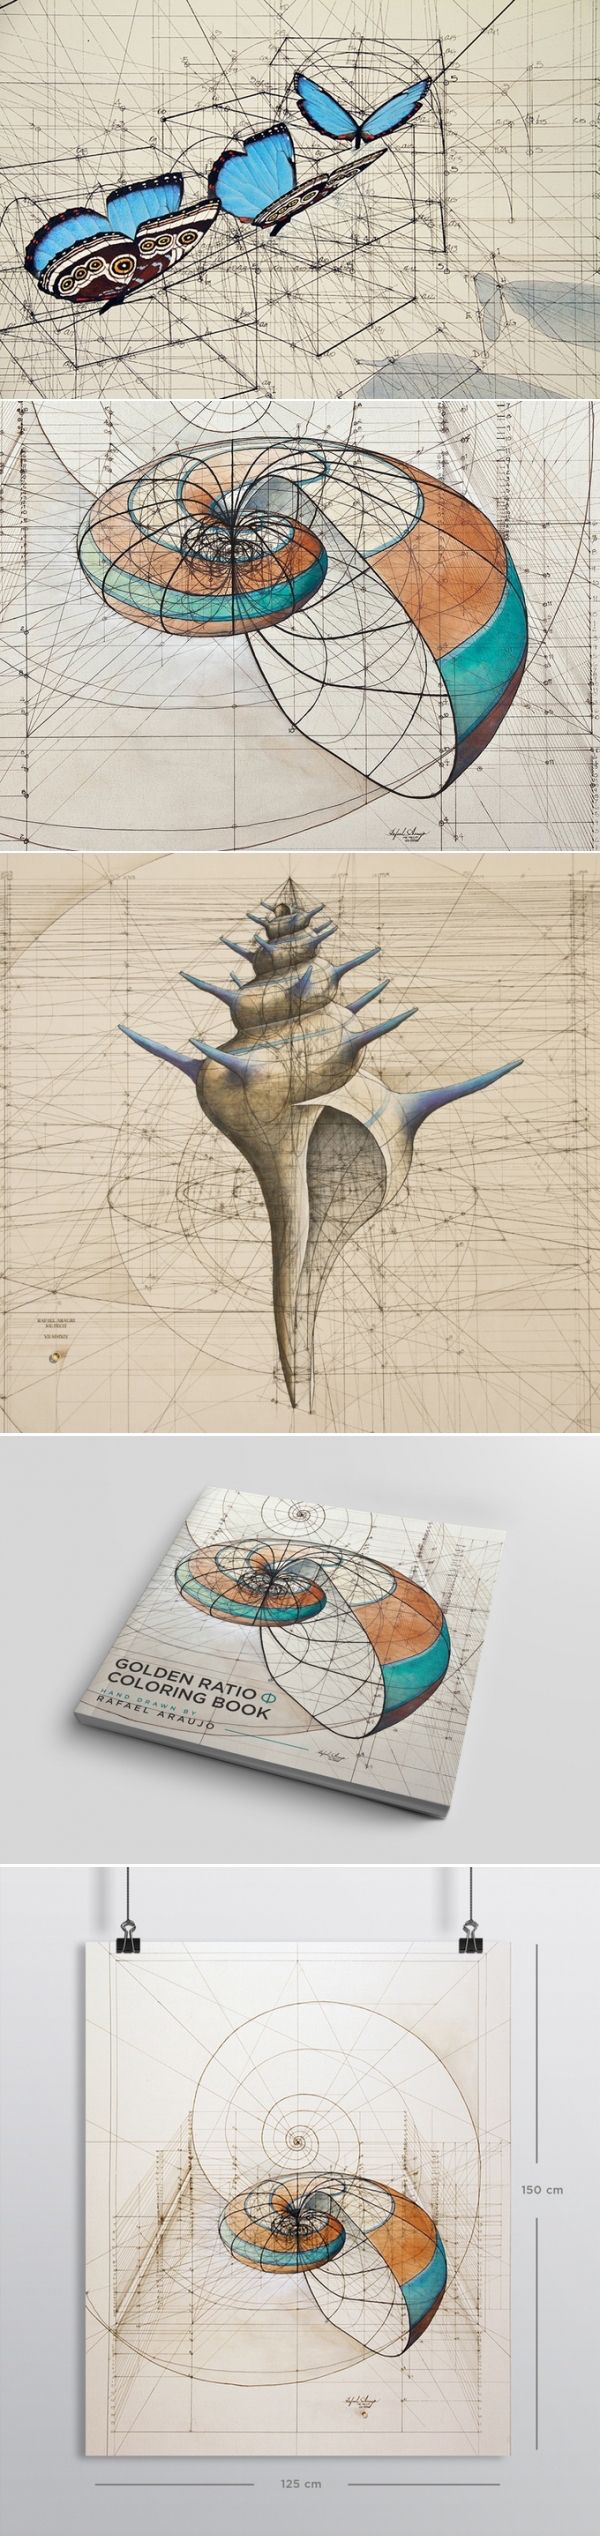 OMG, this is amazing! The best Coloring Book. Golden Ratio Coloring Book by Rafael Araujo